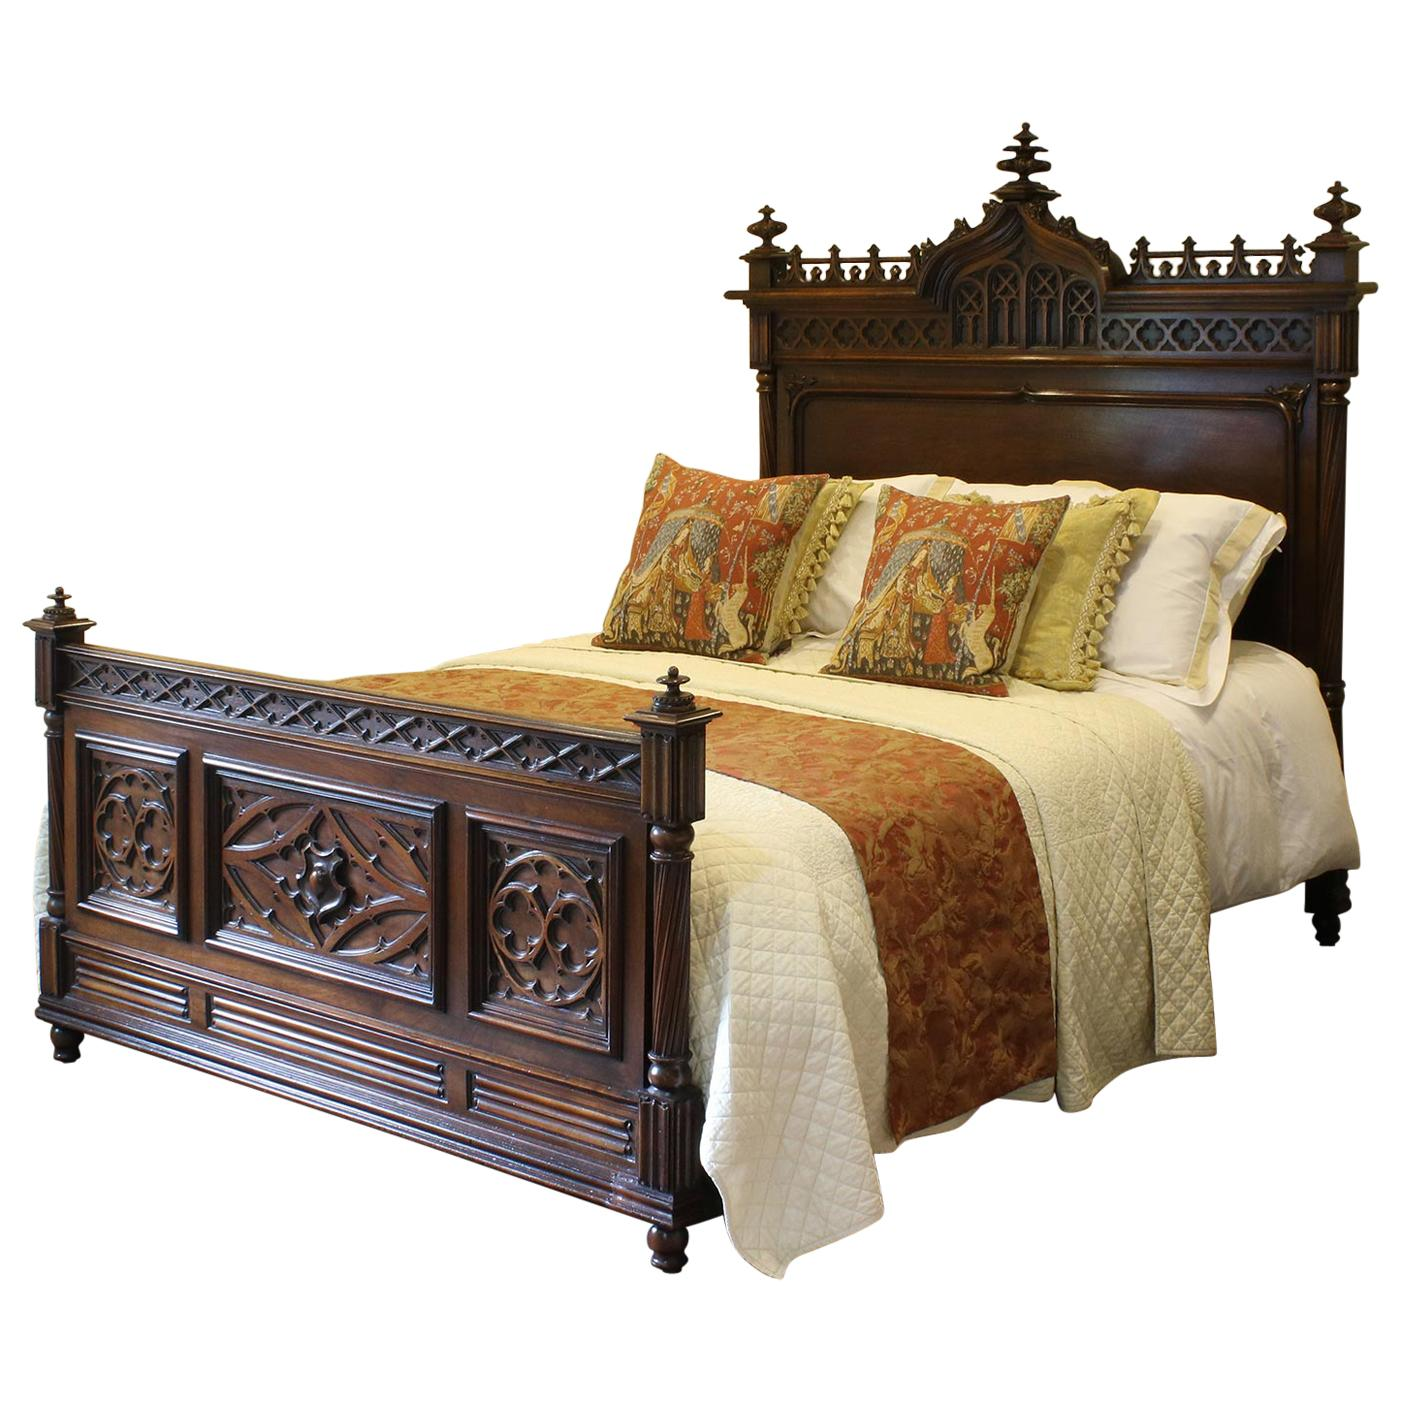 Gothic Style Antique Bed In Walnut, WK102 For Sale